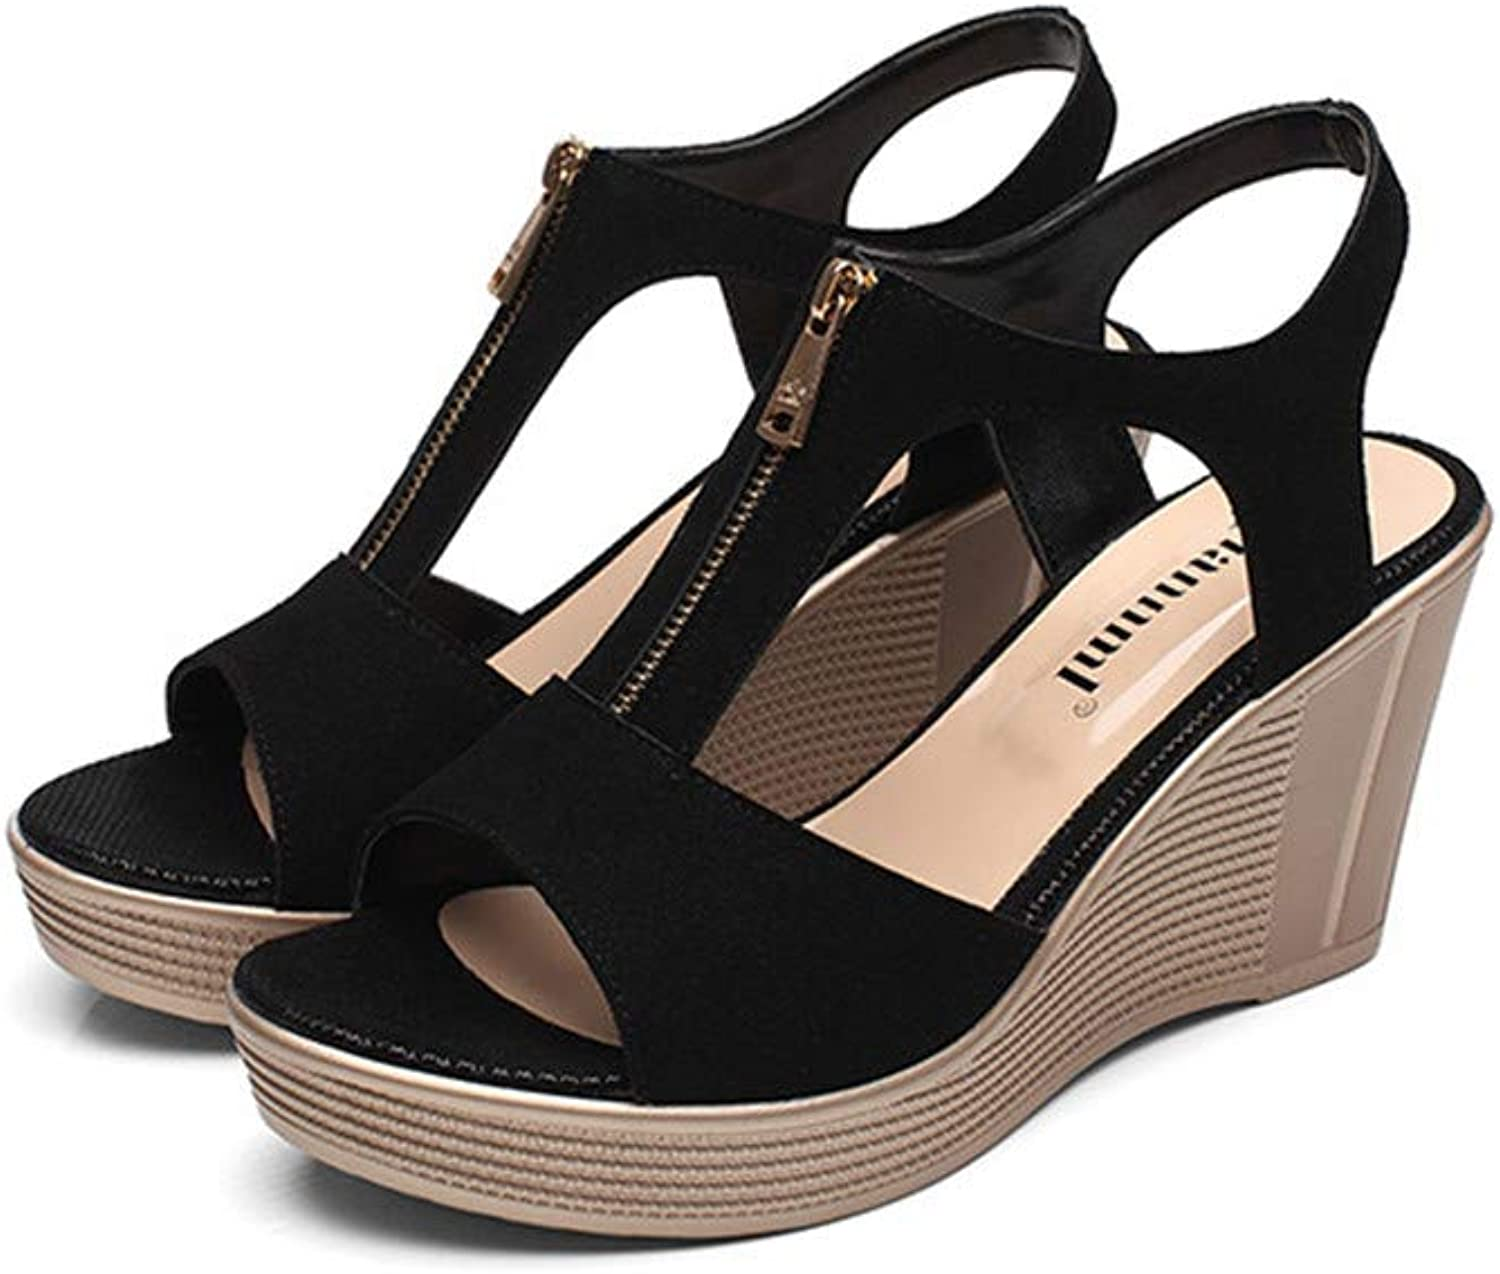 MFairy Women's Wedge Sandals High Platform Open Toe Ankle Strap shoes